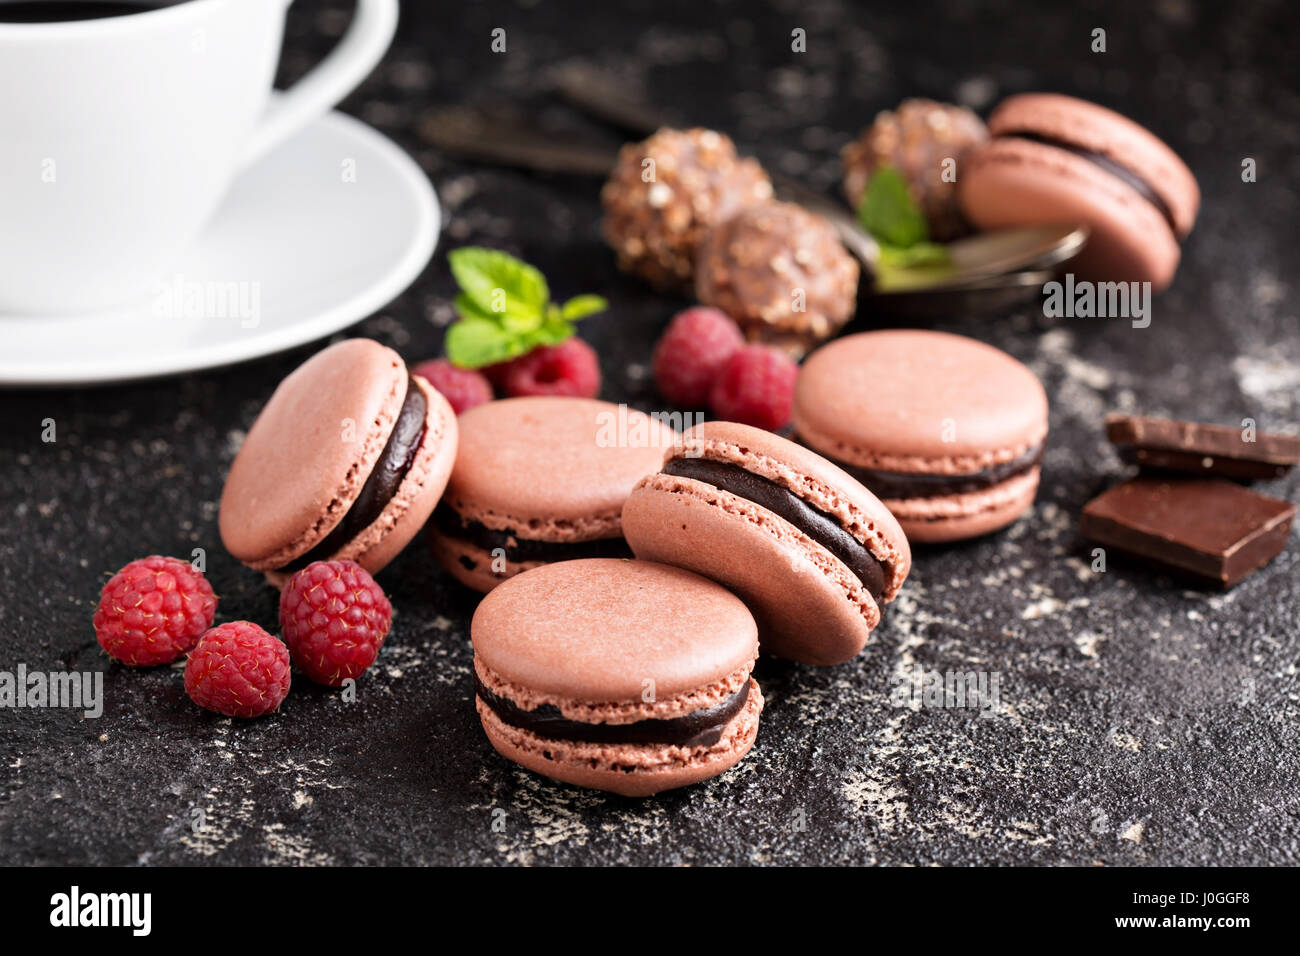 Chocolate and raspberry french macarons with ganache filling - Stock Image